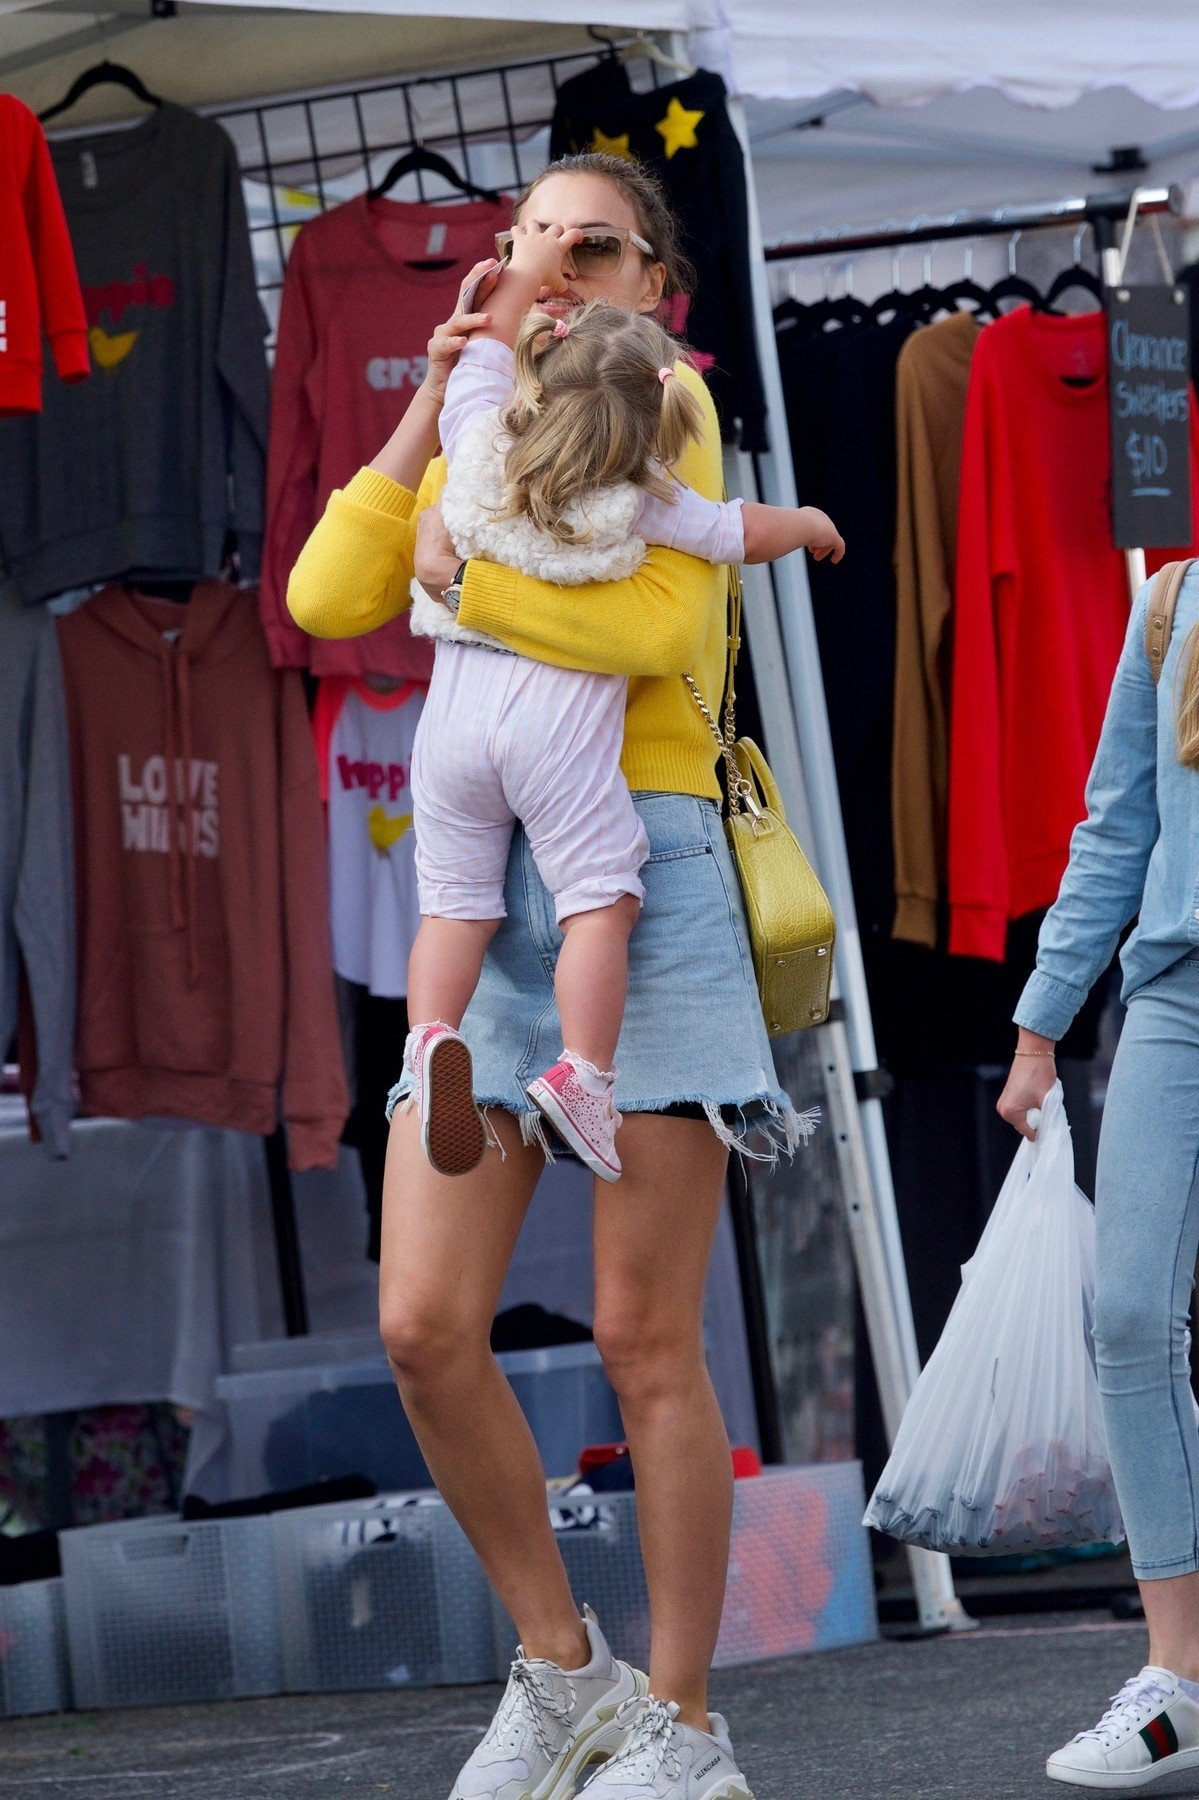 Brentwood, CA  - *EXCLUSIVE*  - Irina Shayk goes shopping at the farmers market with her daughter Lea and other family in Brentwood, CA.  Pictured: Irina Shayk    *UK Clients - Pictures Containing Children Please Pixelate Face Prior To Publication*, Image: 404062873, License: Rights-managed, Restrictions: , Model Release: no, Credit line: Profimedia, AKM-GSI